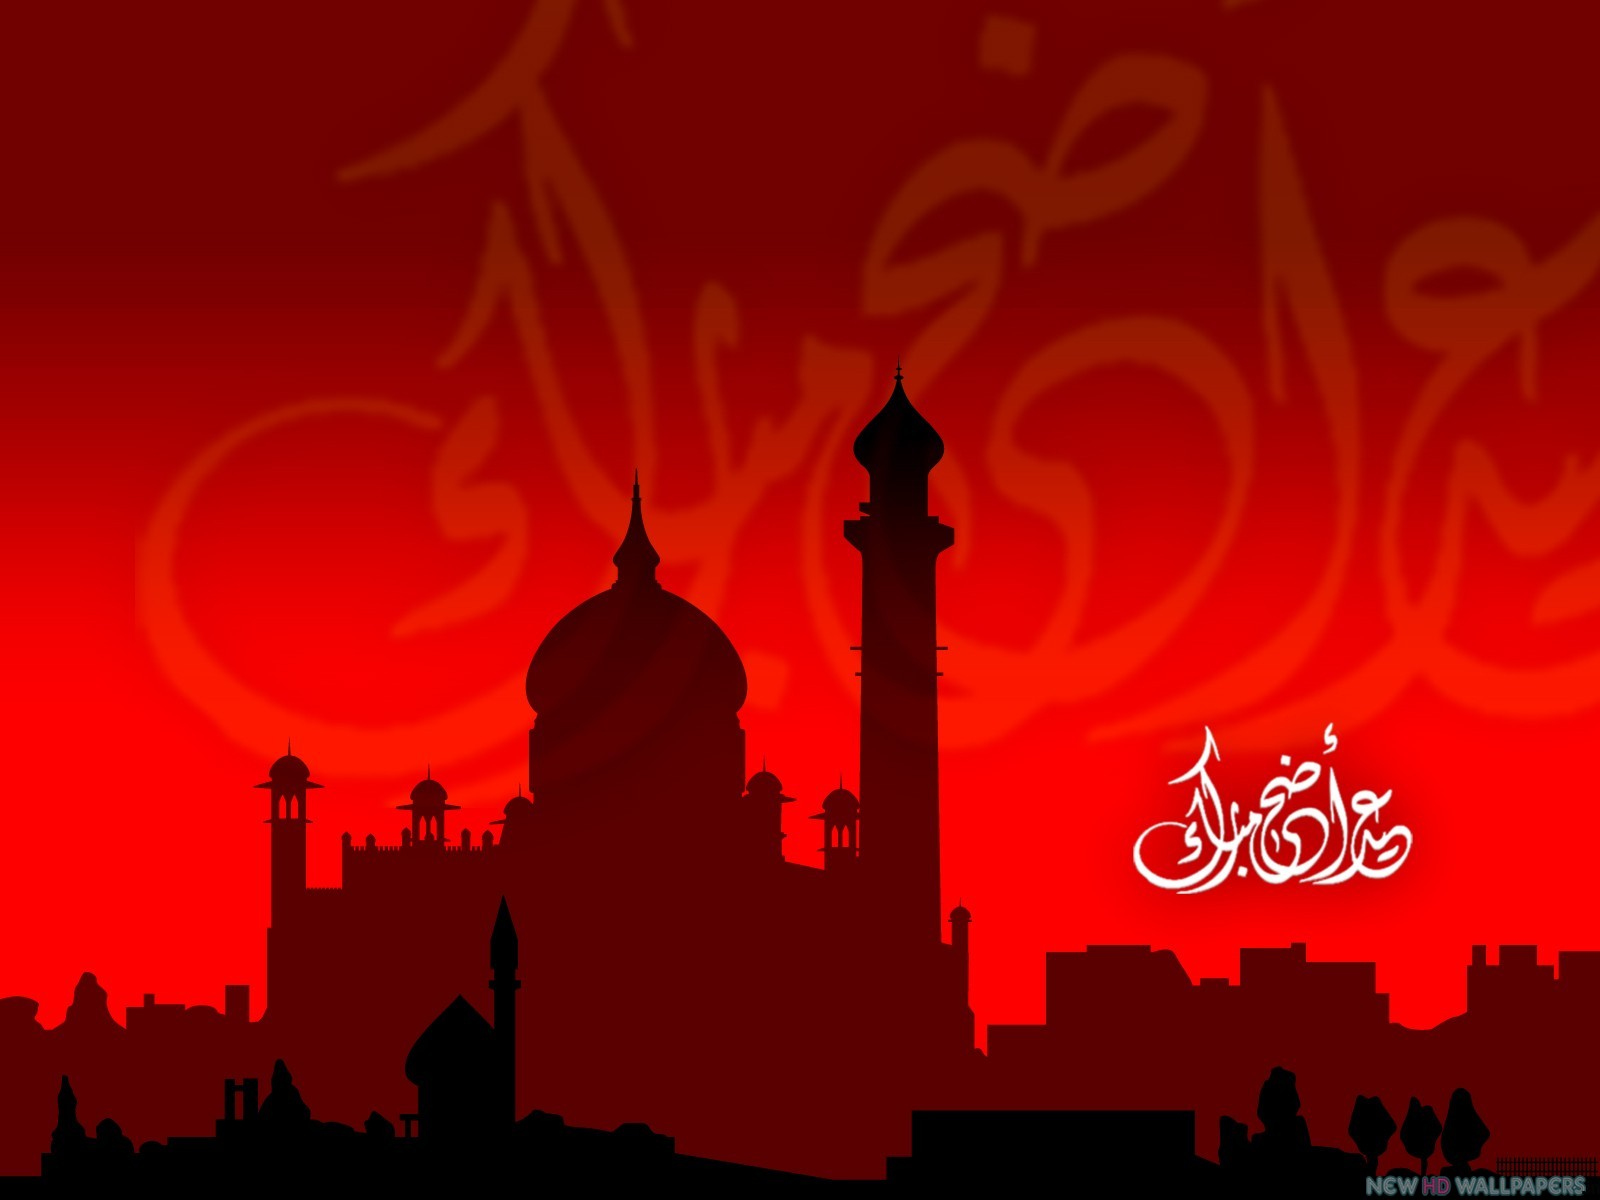 20 Best Eid Mubarak 2015 Greetings Wishes And Wallpapers